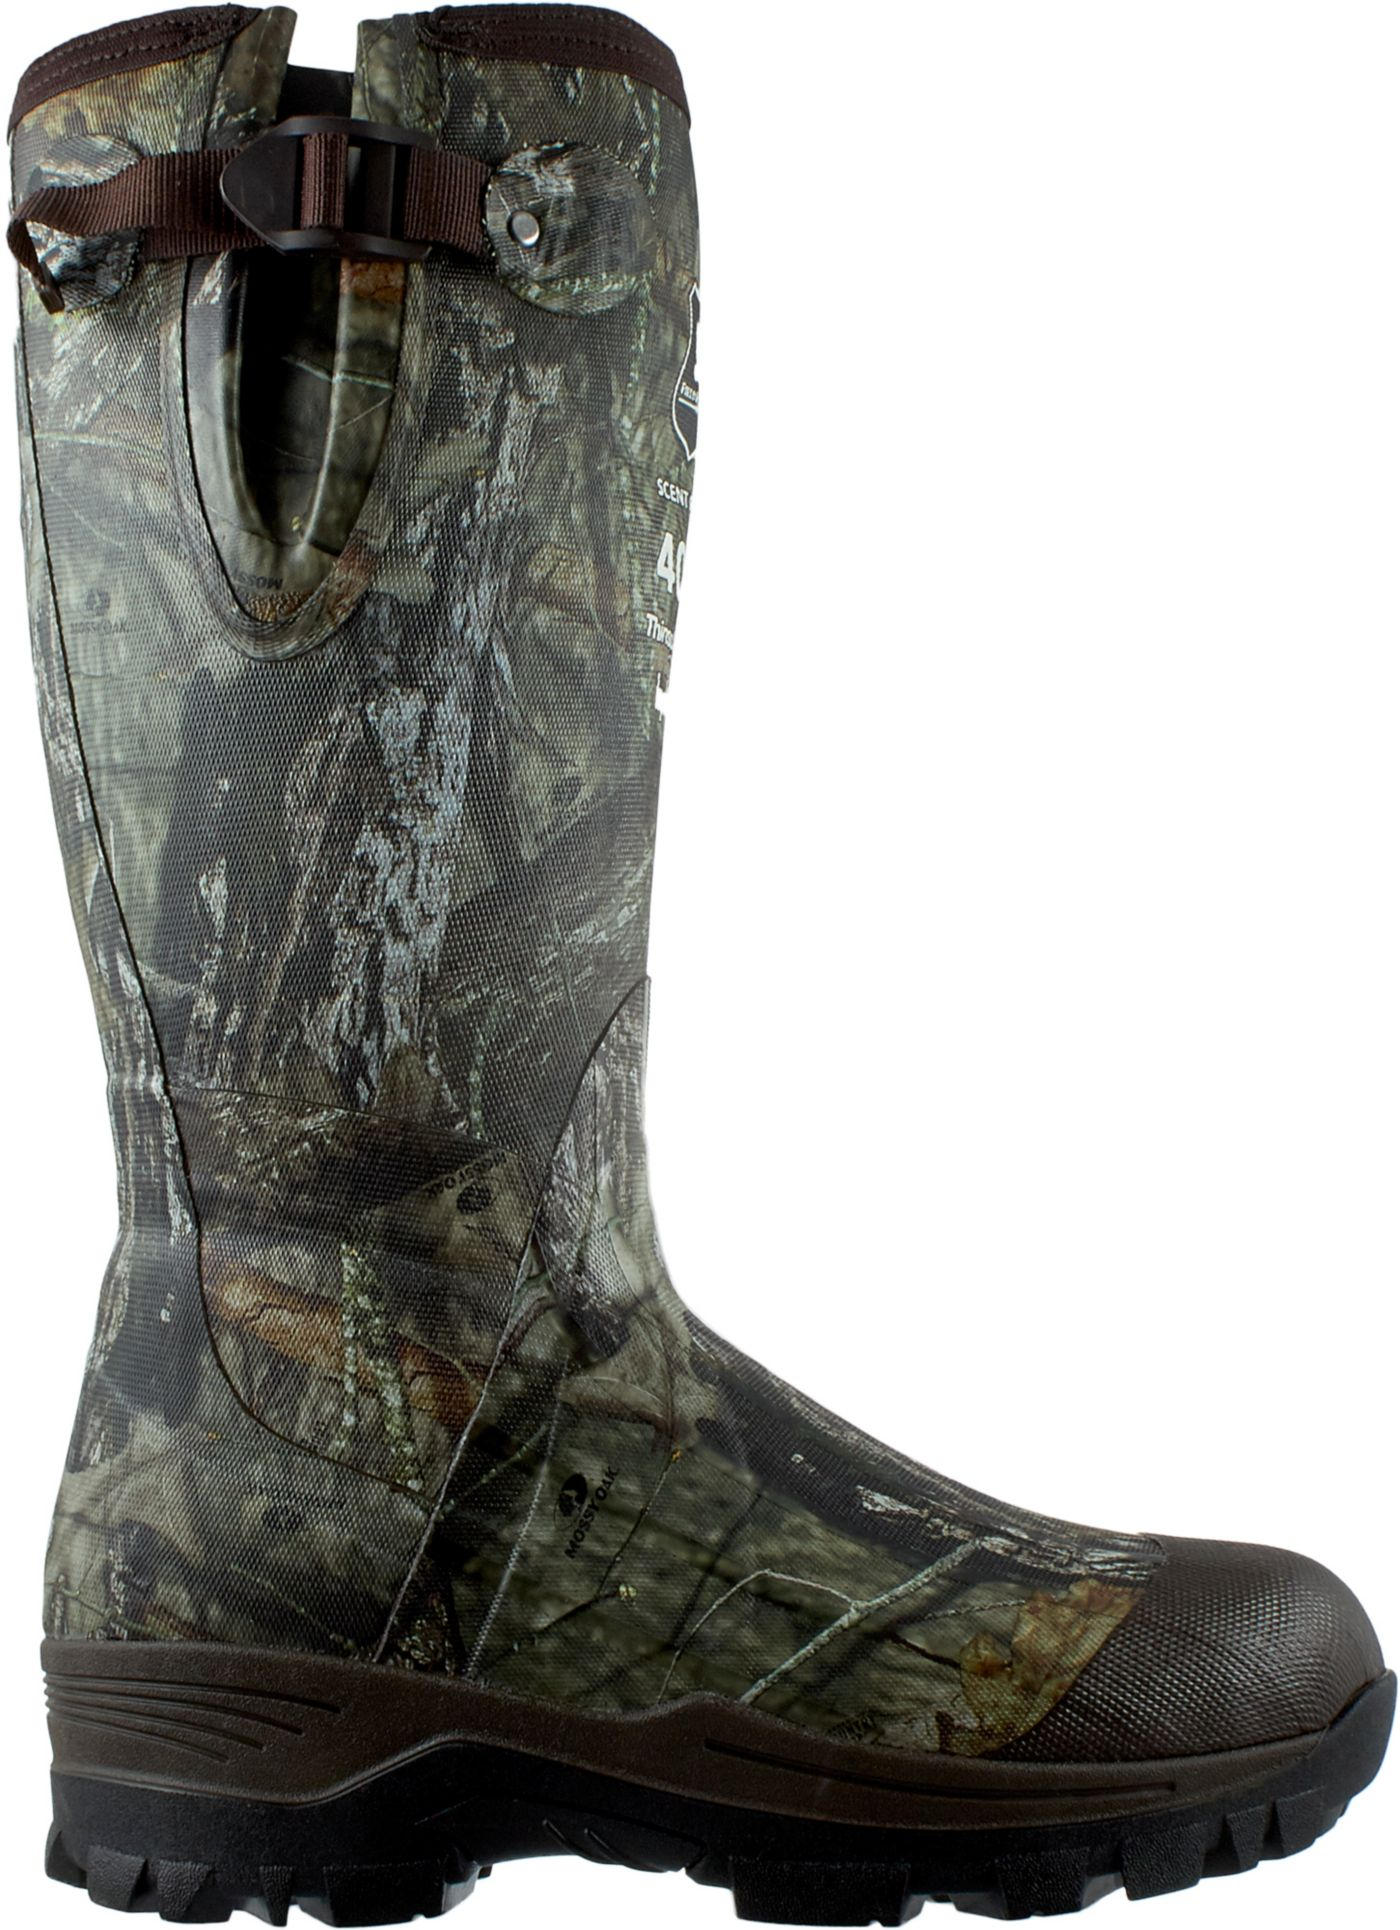 Field & Stream Men's Swamptracker Mossy Oak 400g Rubber Hunting Boots